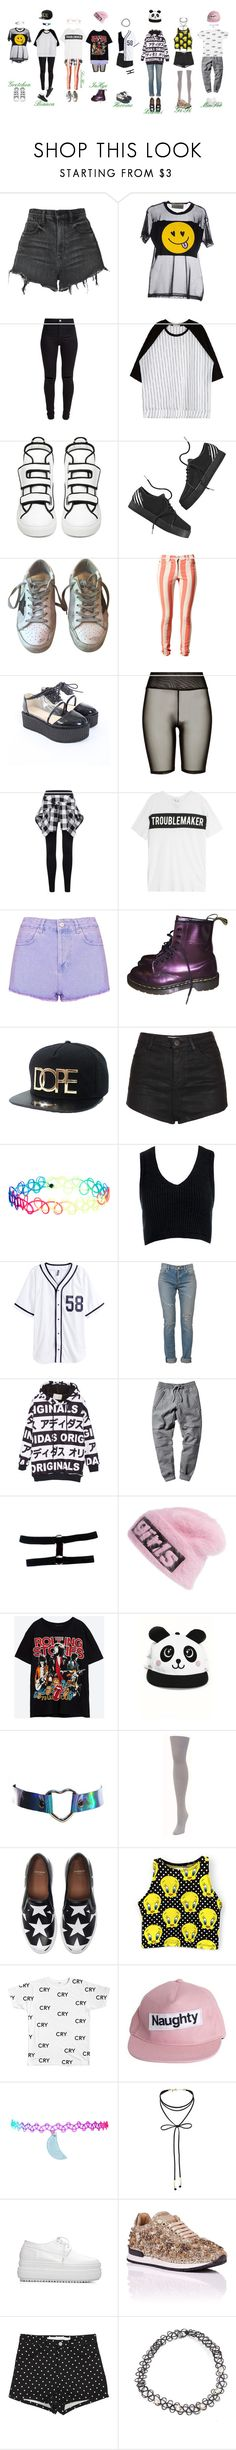 """""""Flower Power """"Queens"""" Dance Practice"""" by candy-ninjas ❤ liked on Polyvore featuring Alexander Wang, TeeTrend, New Look, Raf Simons, adidas NEO, Golden Goose, House of Holland, River Island, Zoe Karssen and Topshop"""